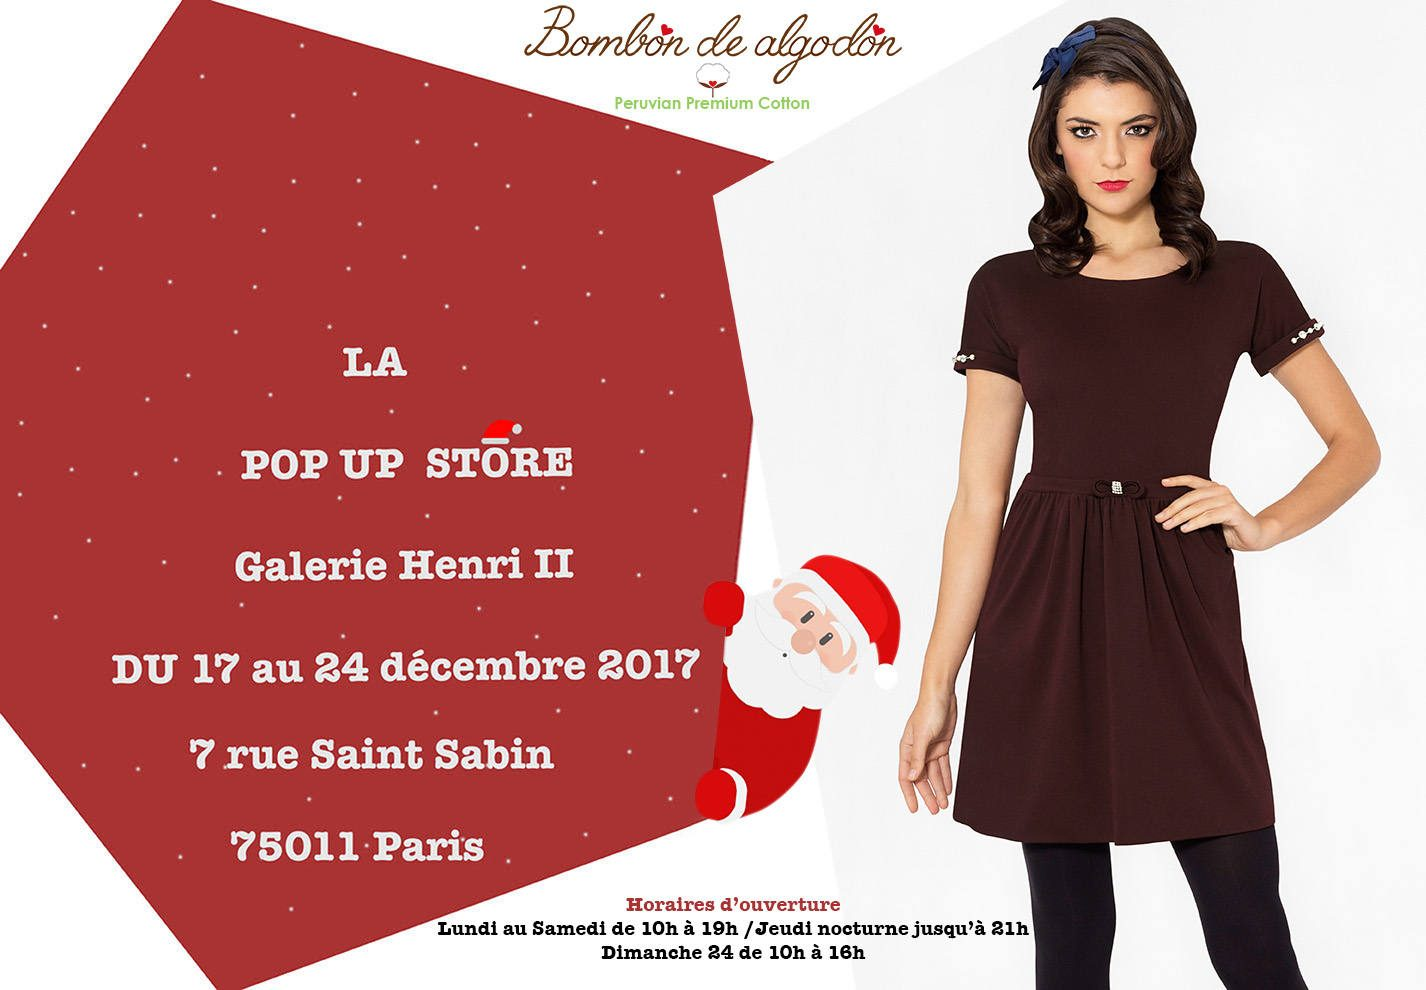 Pop-up store Bombon de algodon